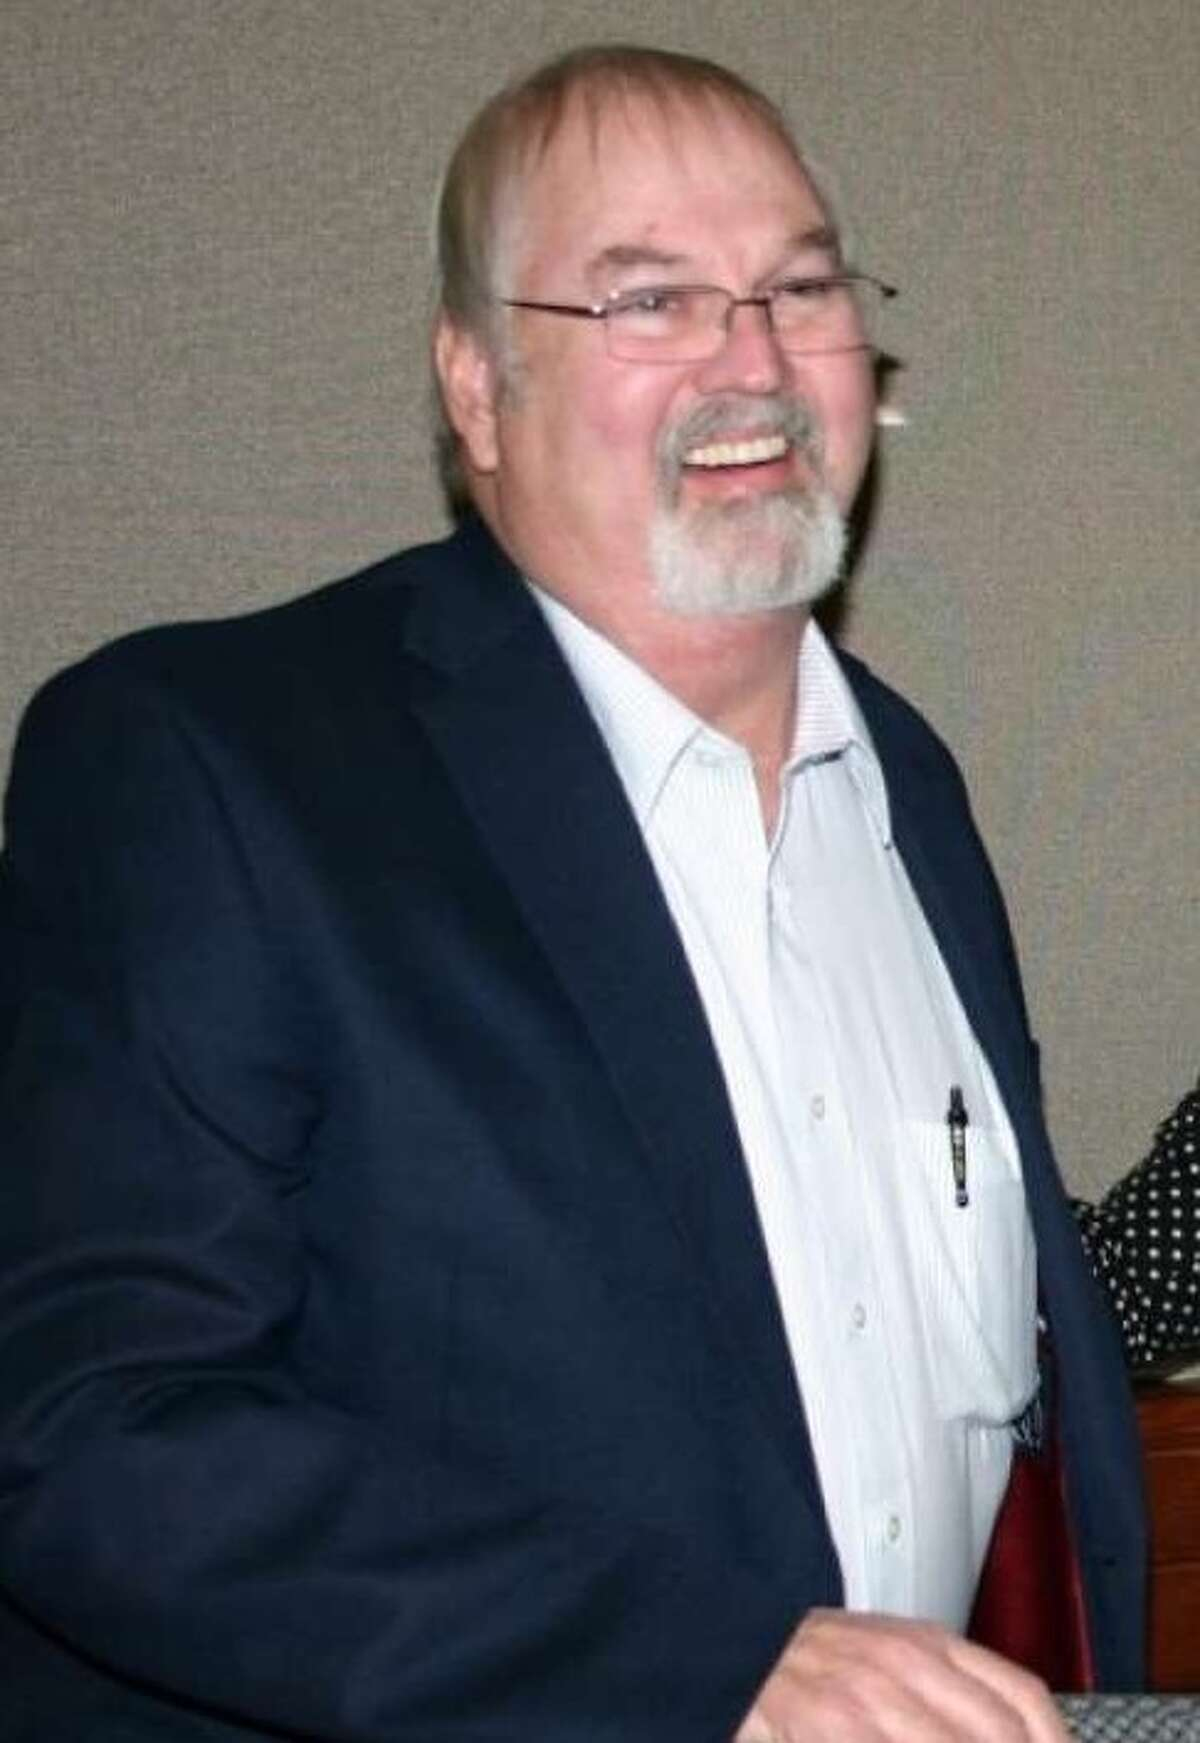 Liberty County Commissioner Mike McCarty